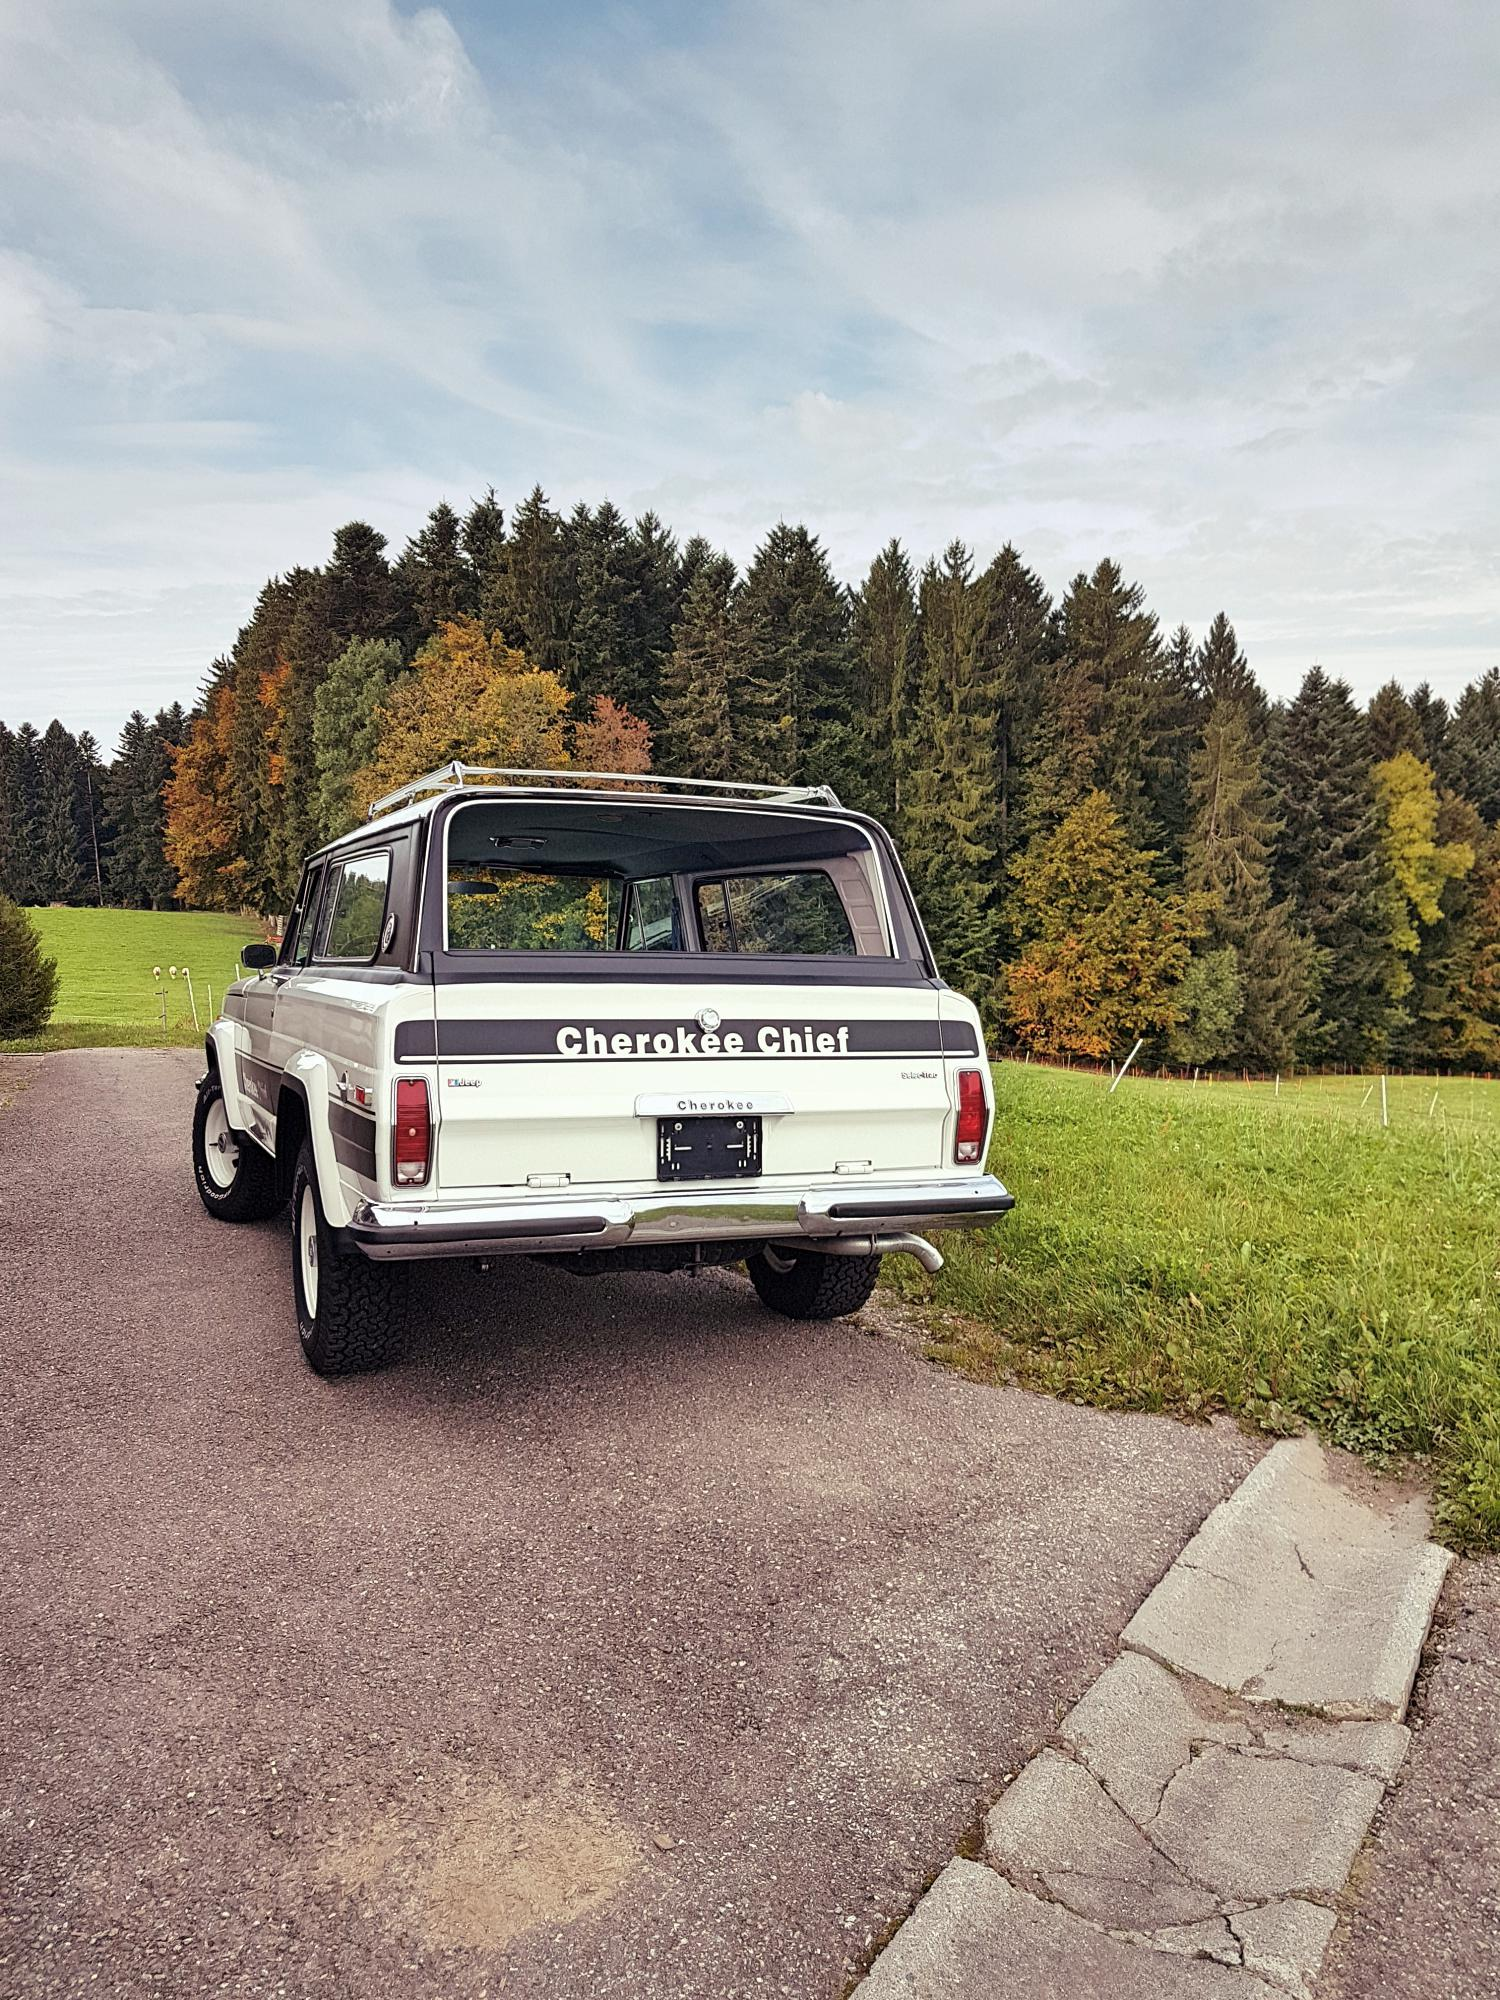 jeep-cherokee-chief-1978-shooting-morgins-switzerland-5.jpg